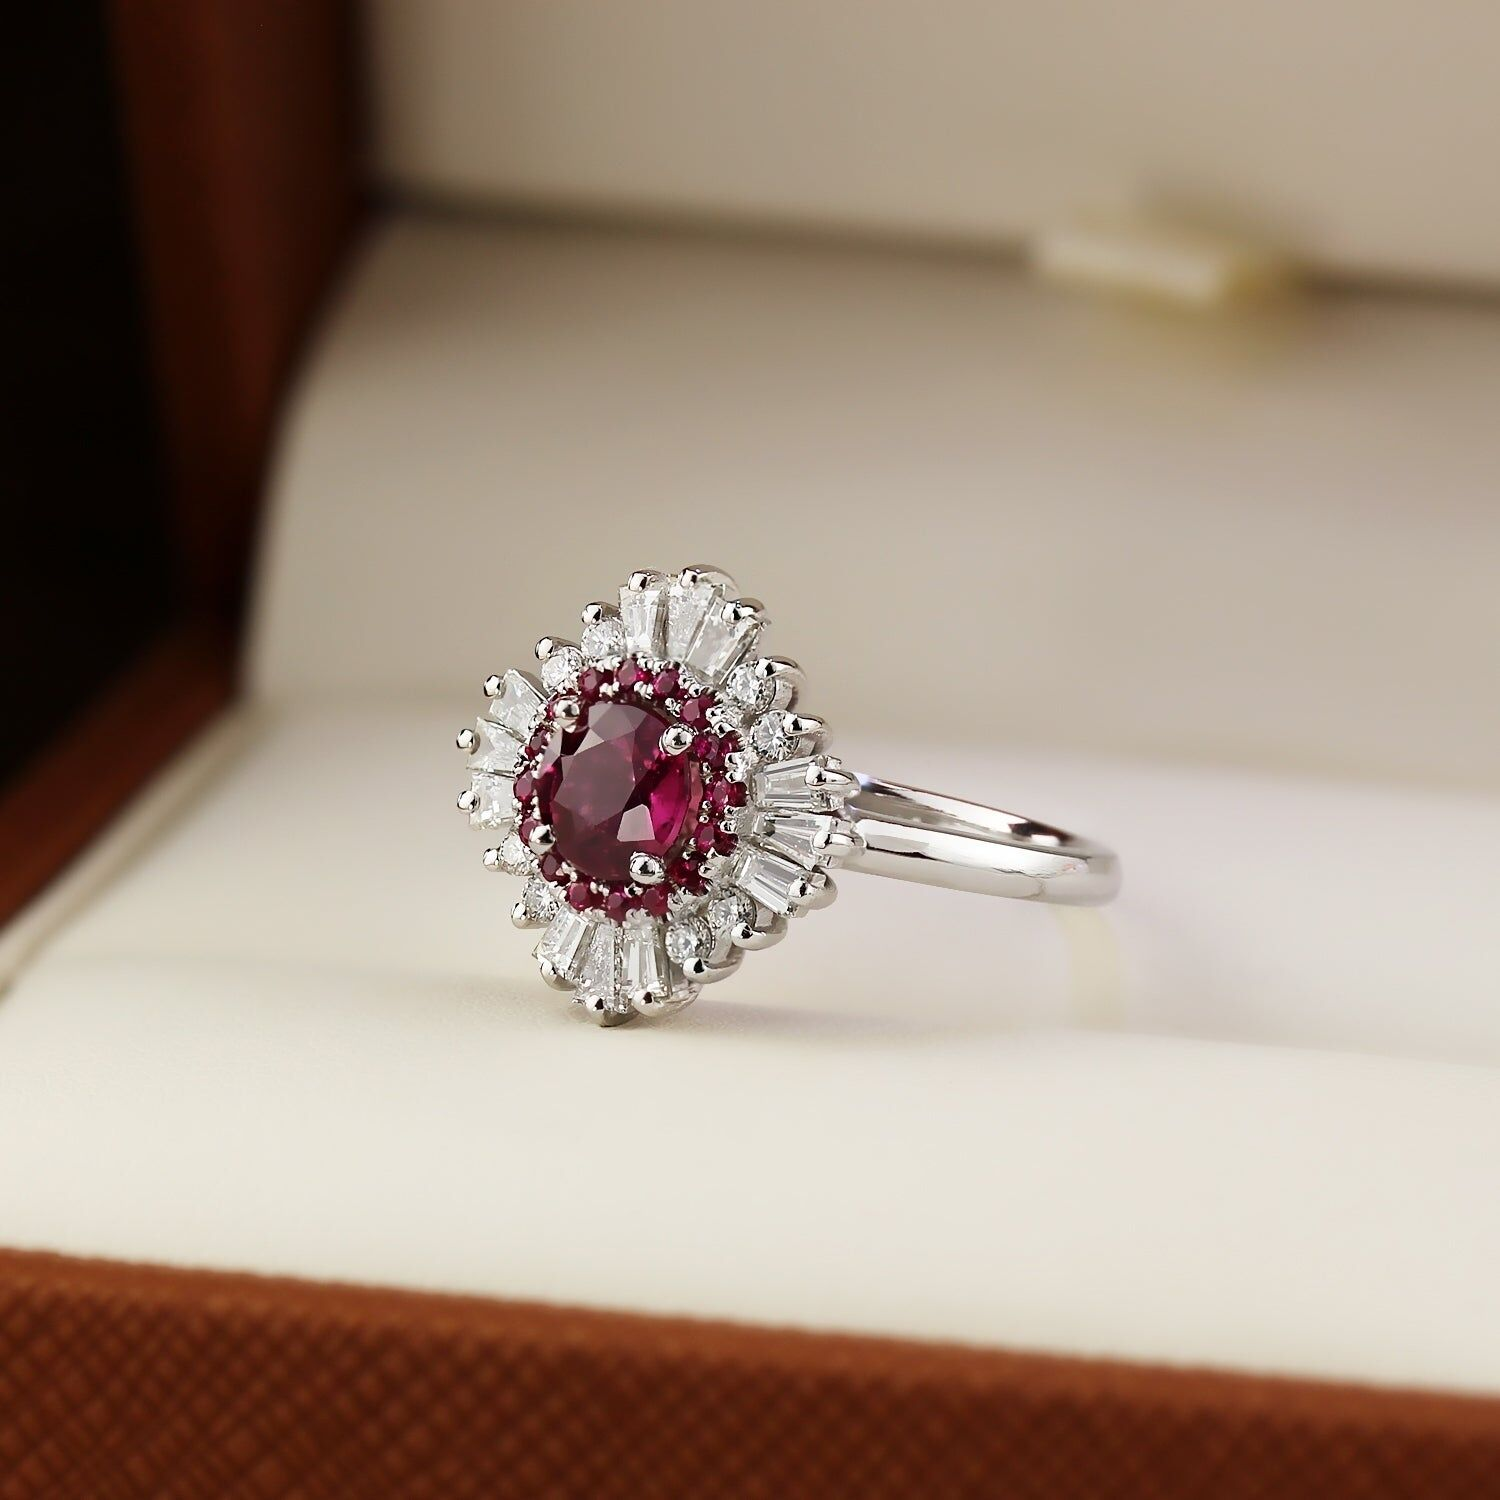 July's Birthstone History: The Ruby